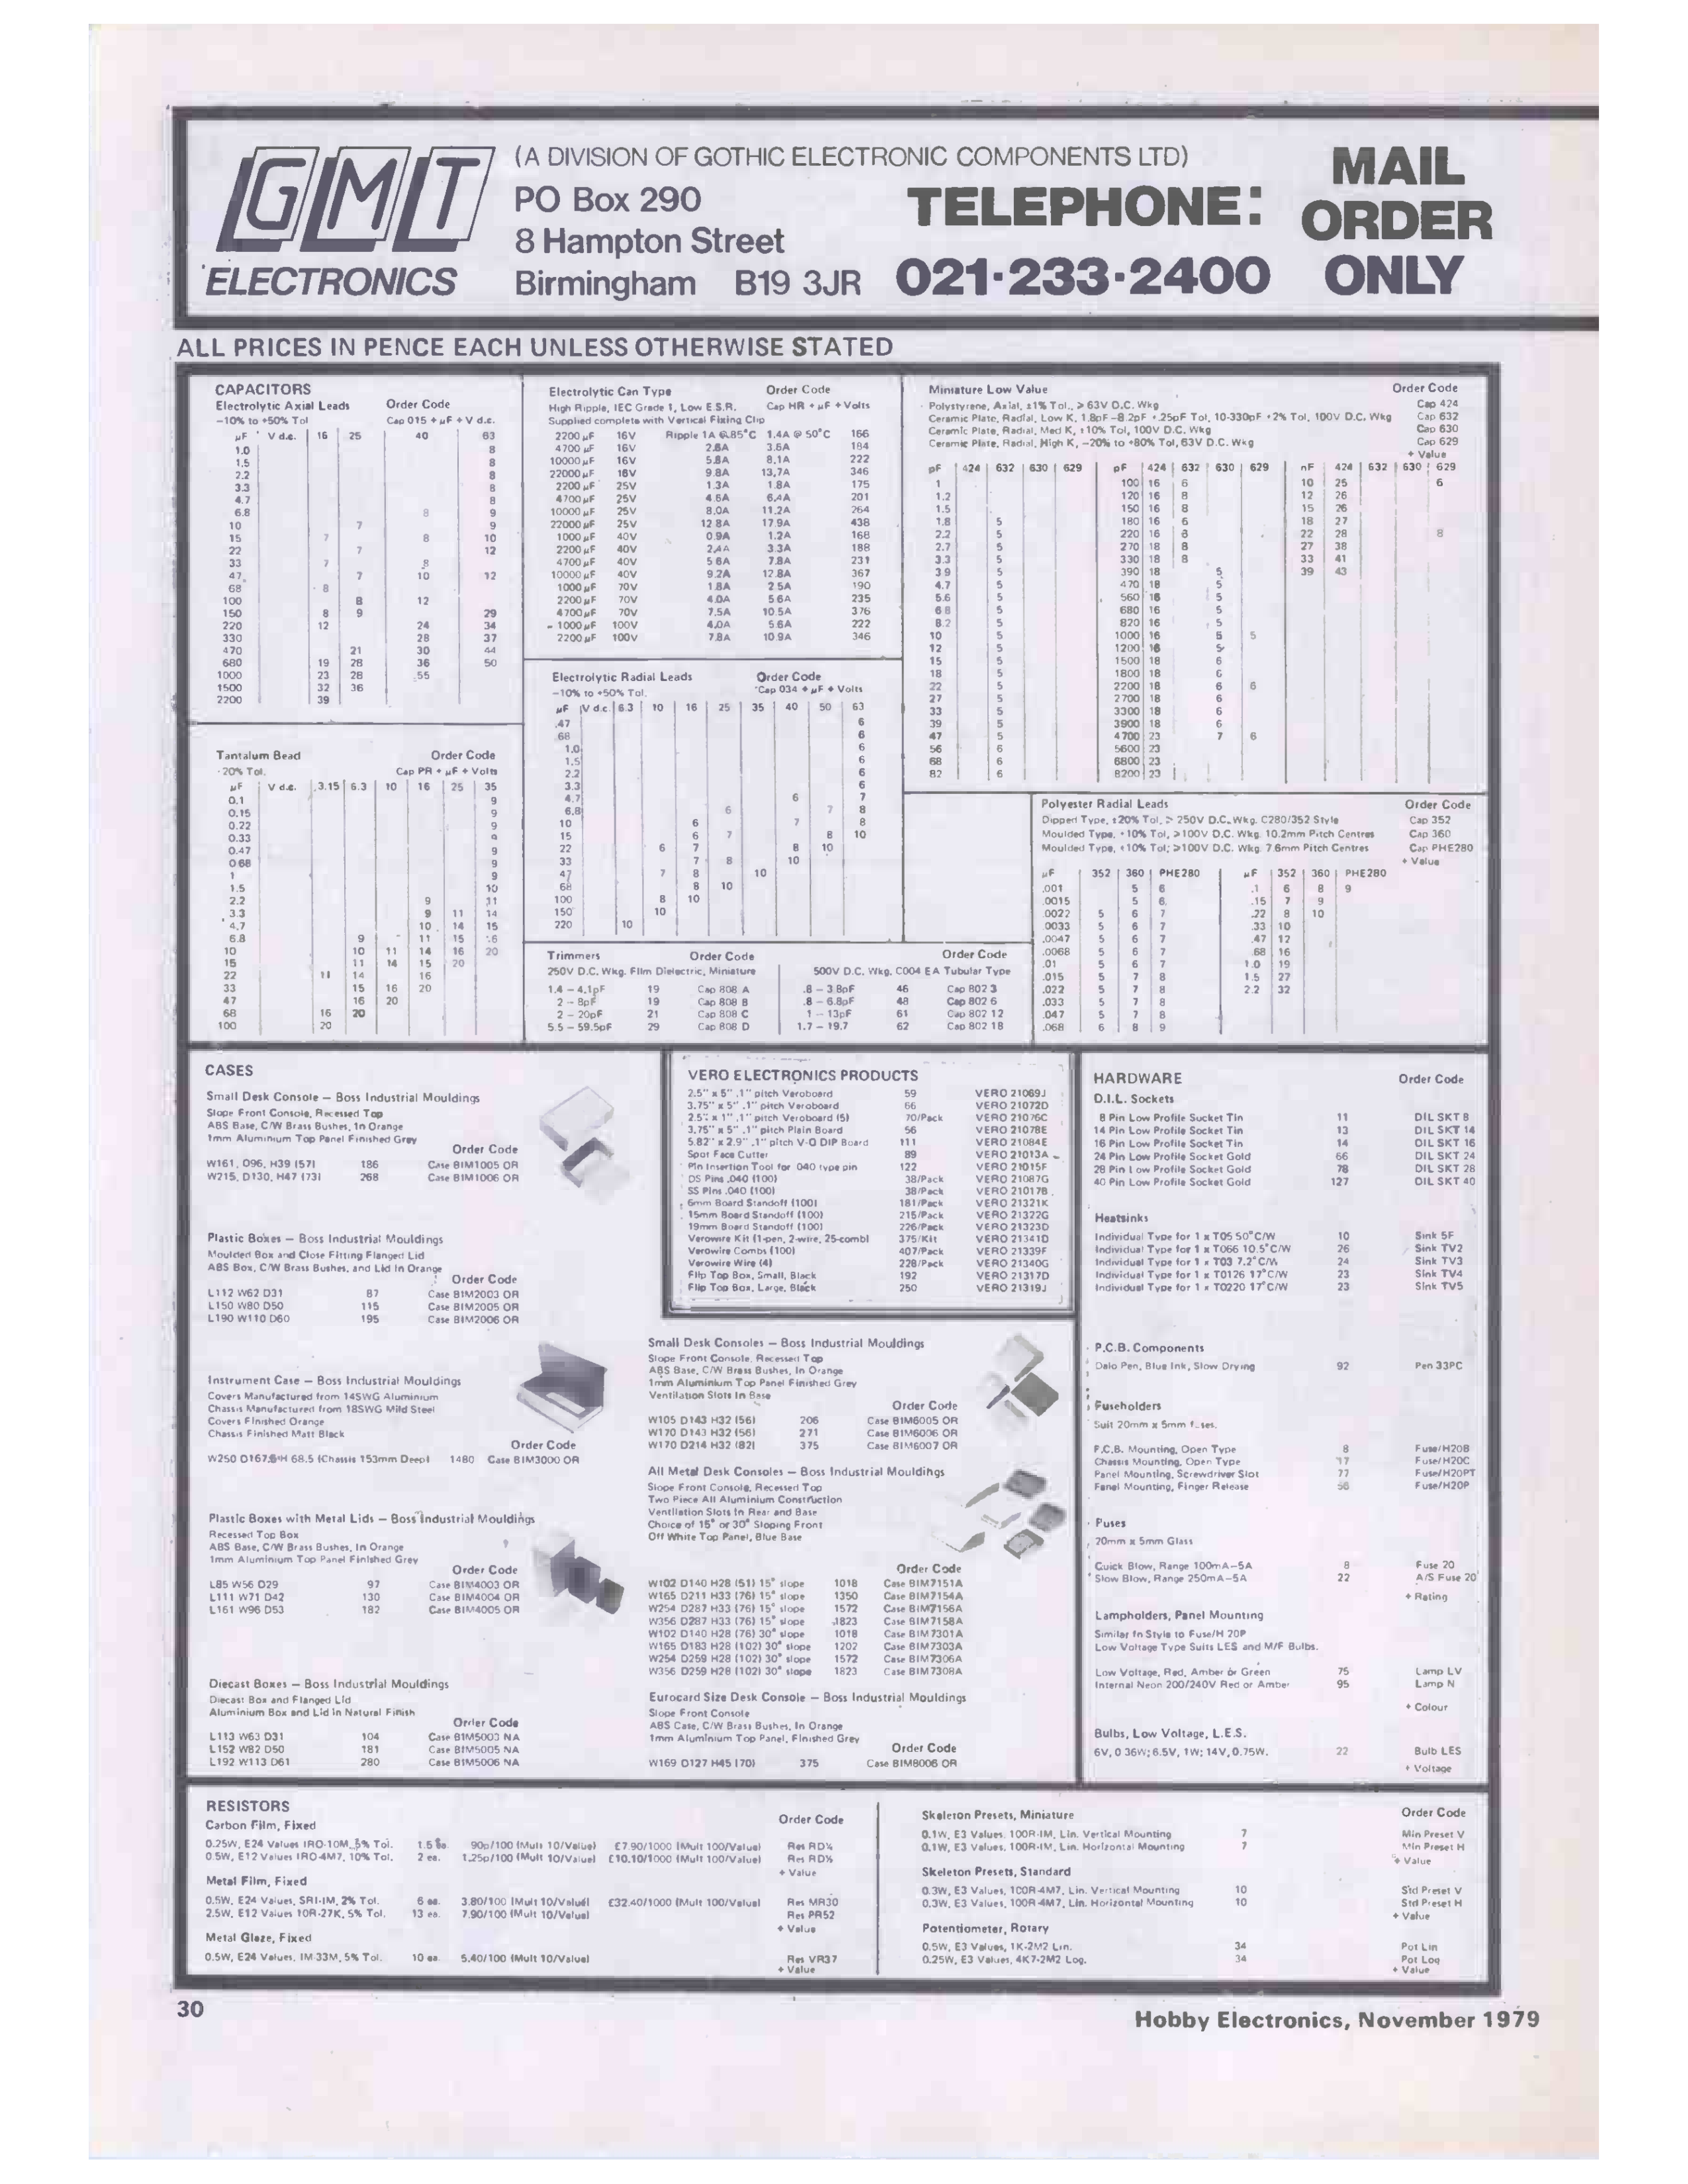 Hobby-Electronics-1979-11-S-OCR_page001.png